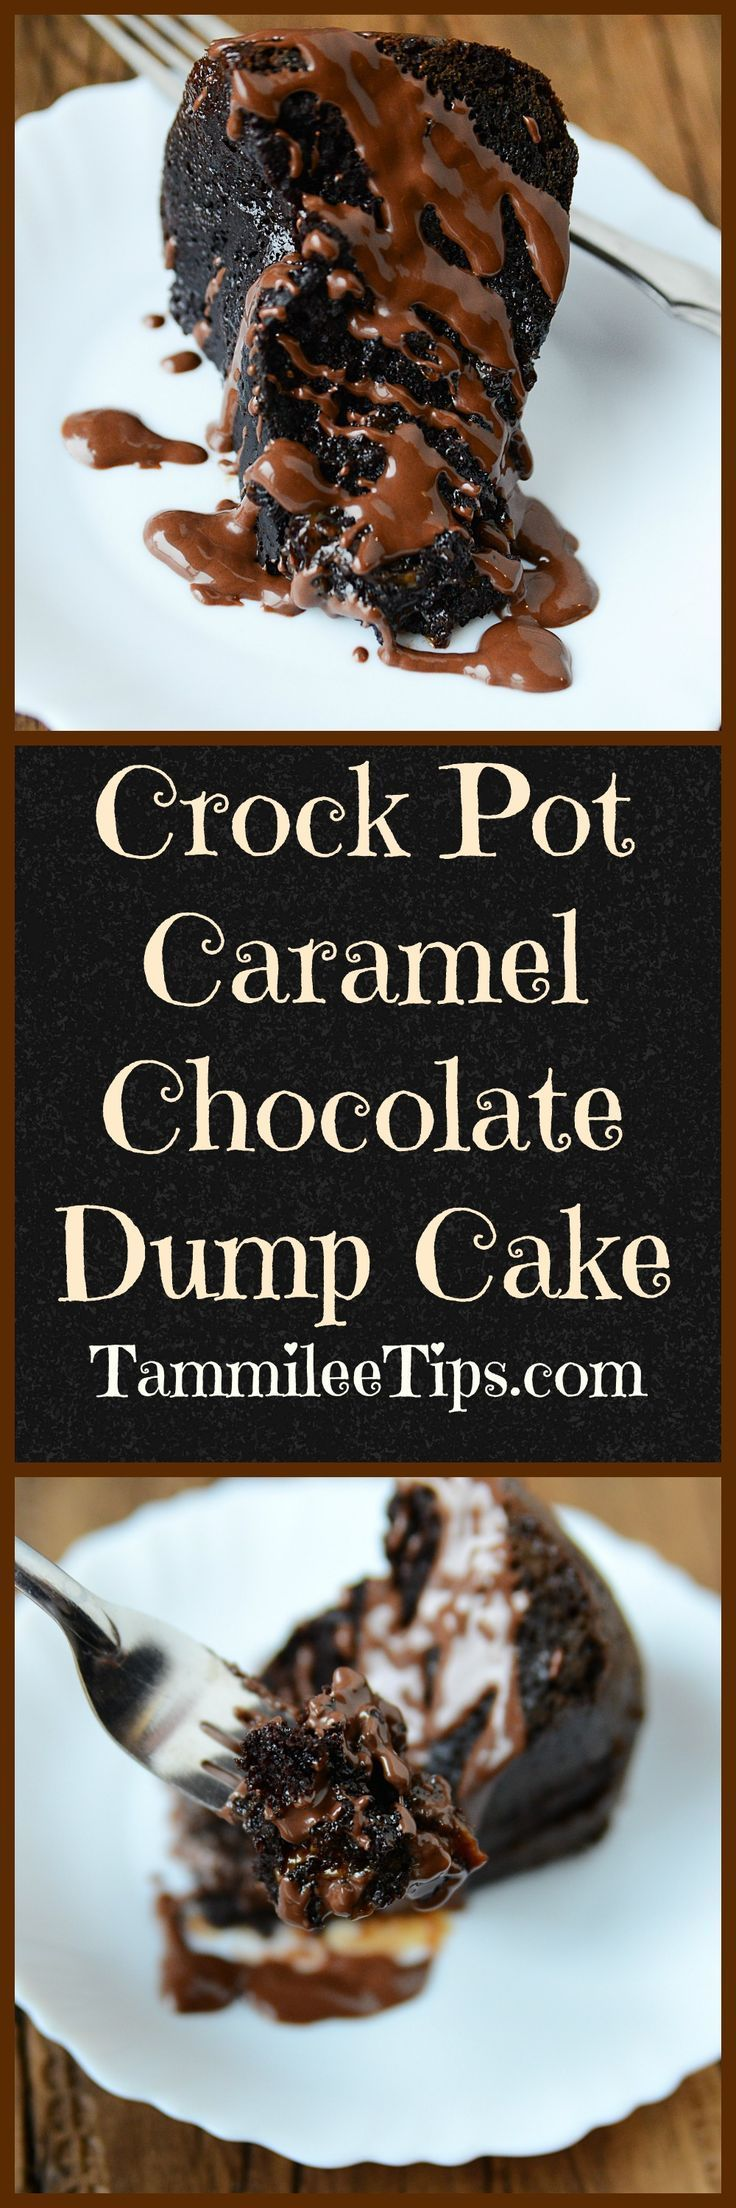 Crock Pot Chocolate Caramel Dump Cake Recipe! This slow cooker cake recipes is…